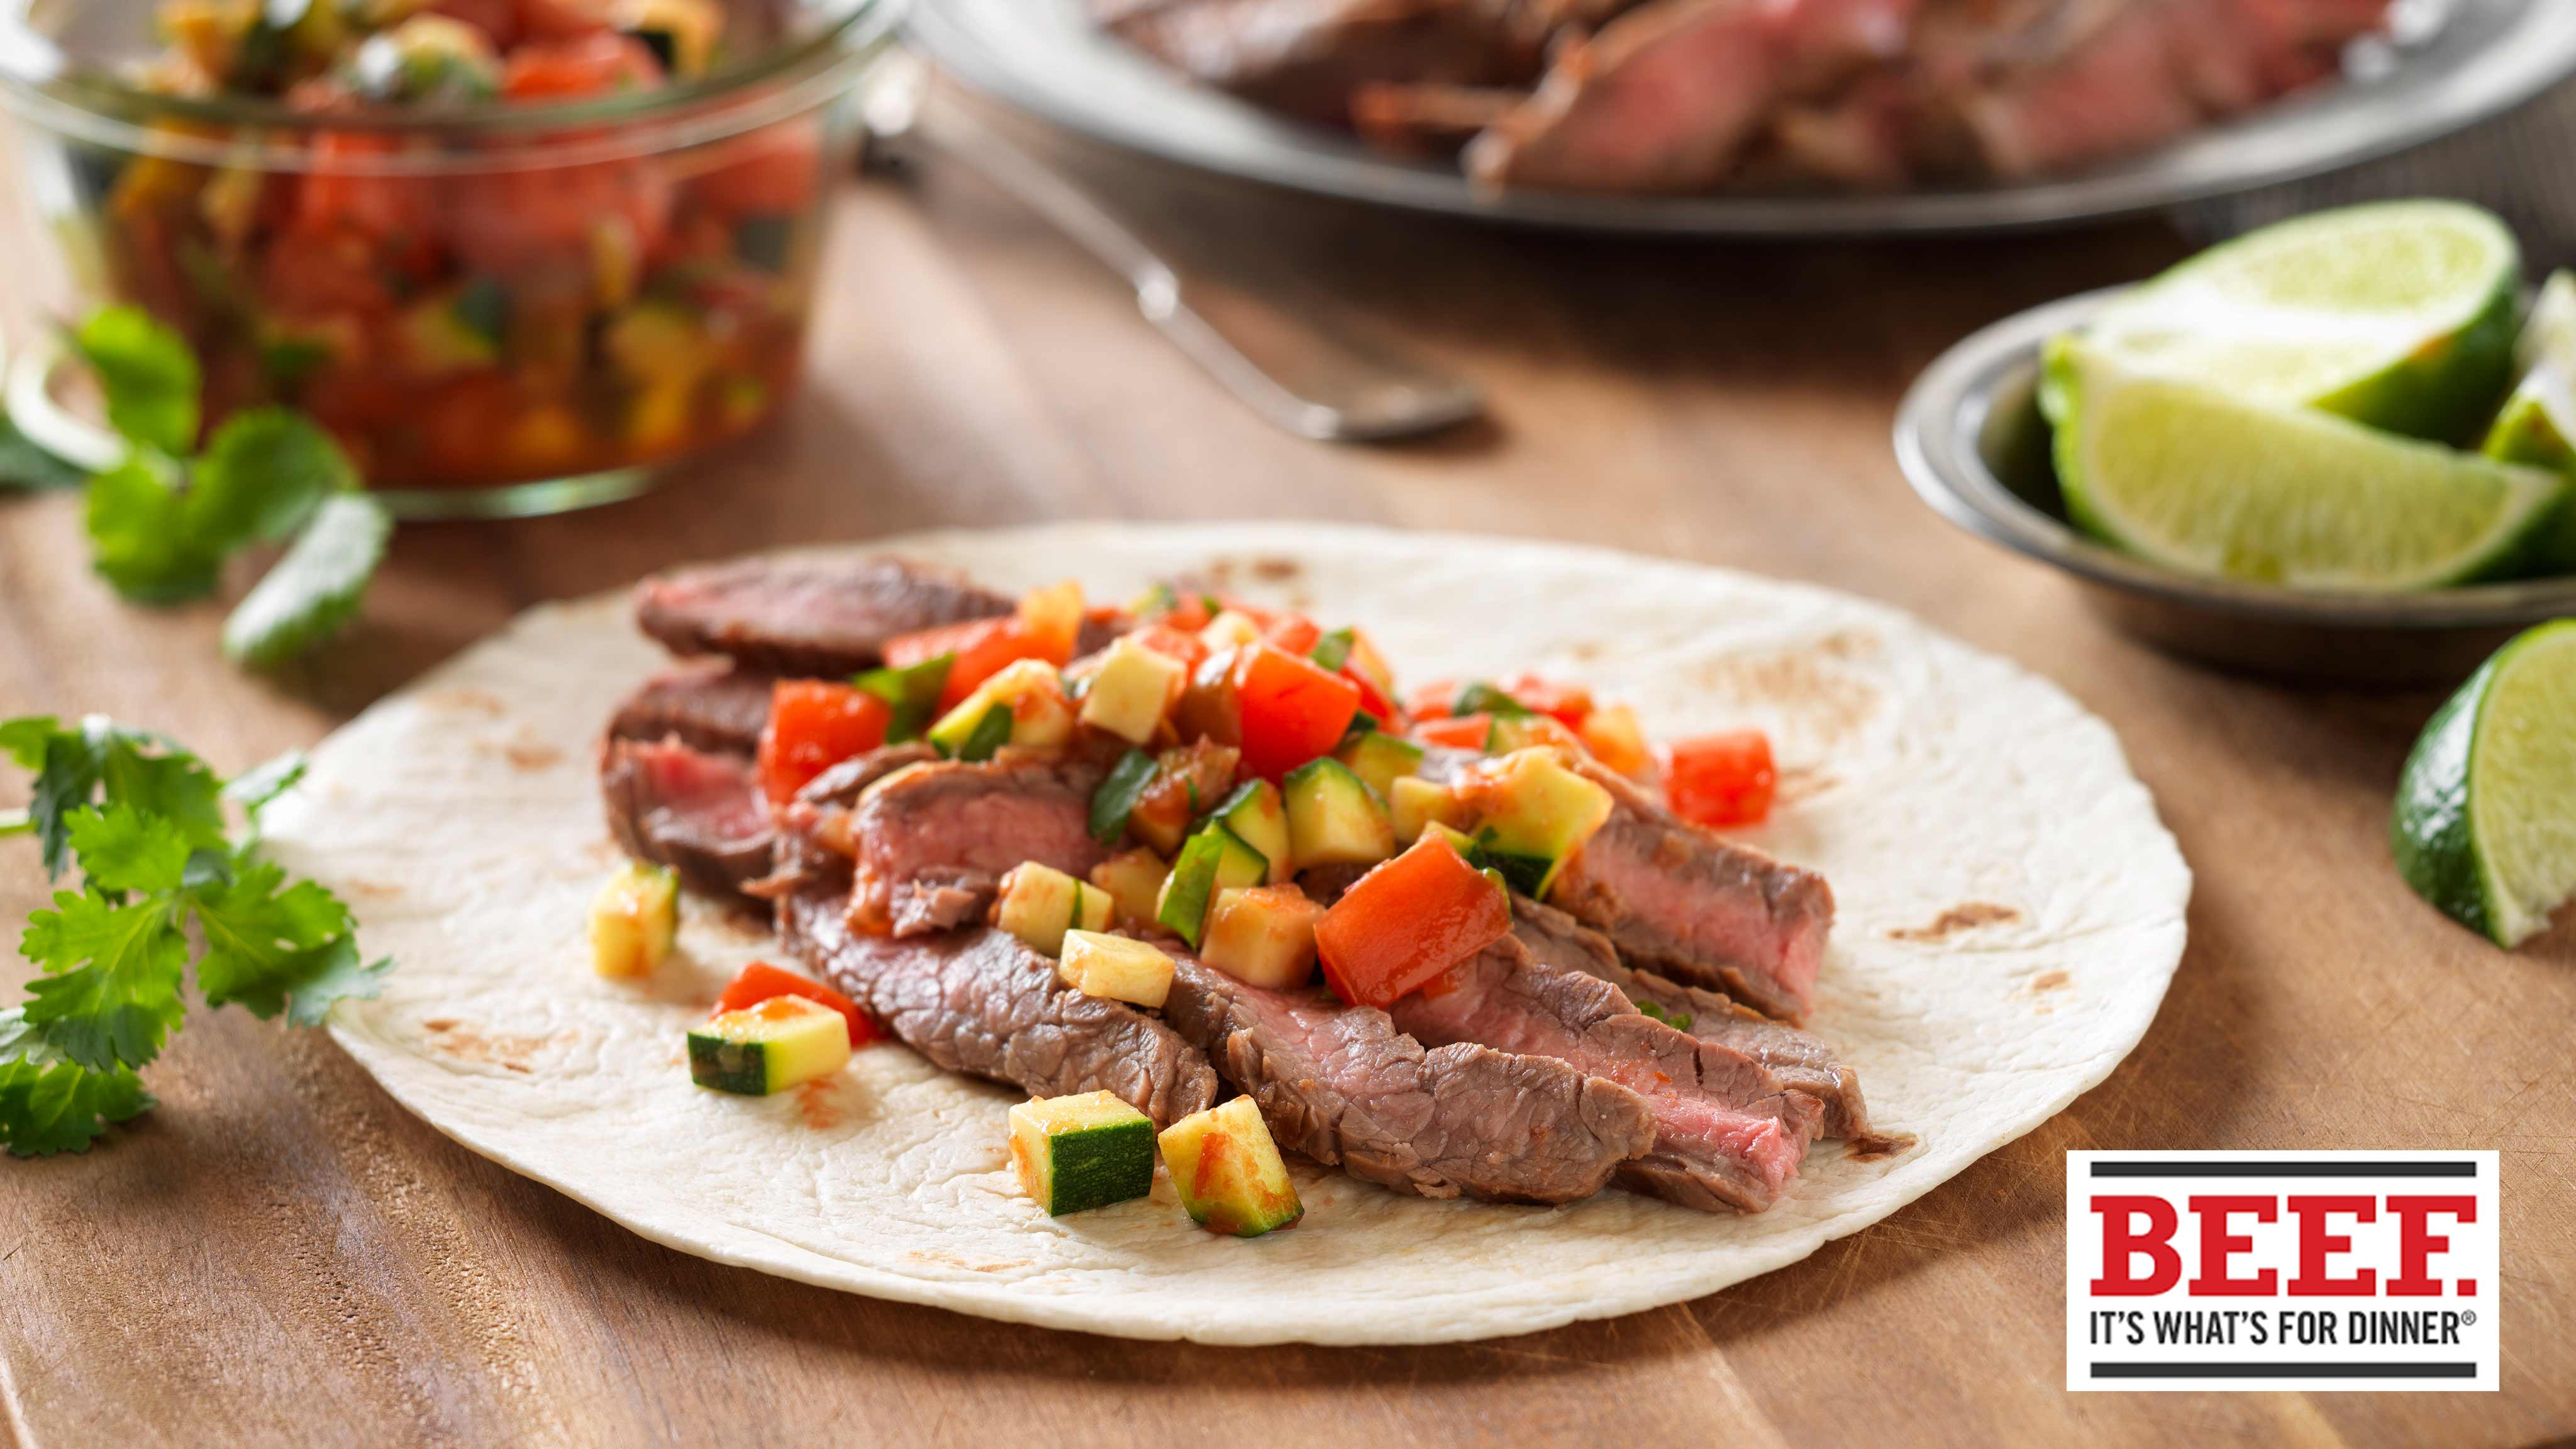 Image for Recipe Quick Beef Fajitas with Pico de Gallo